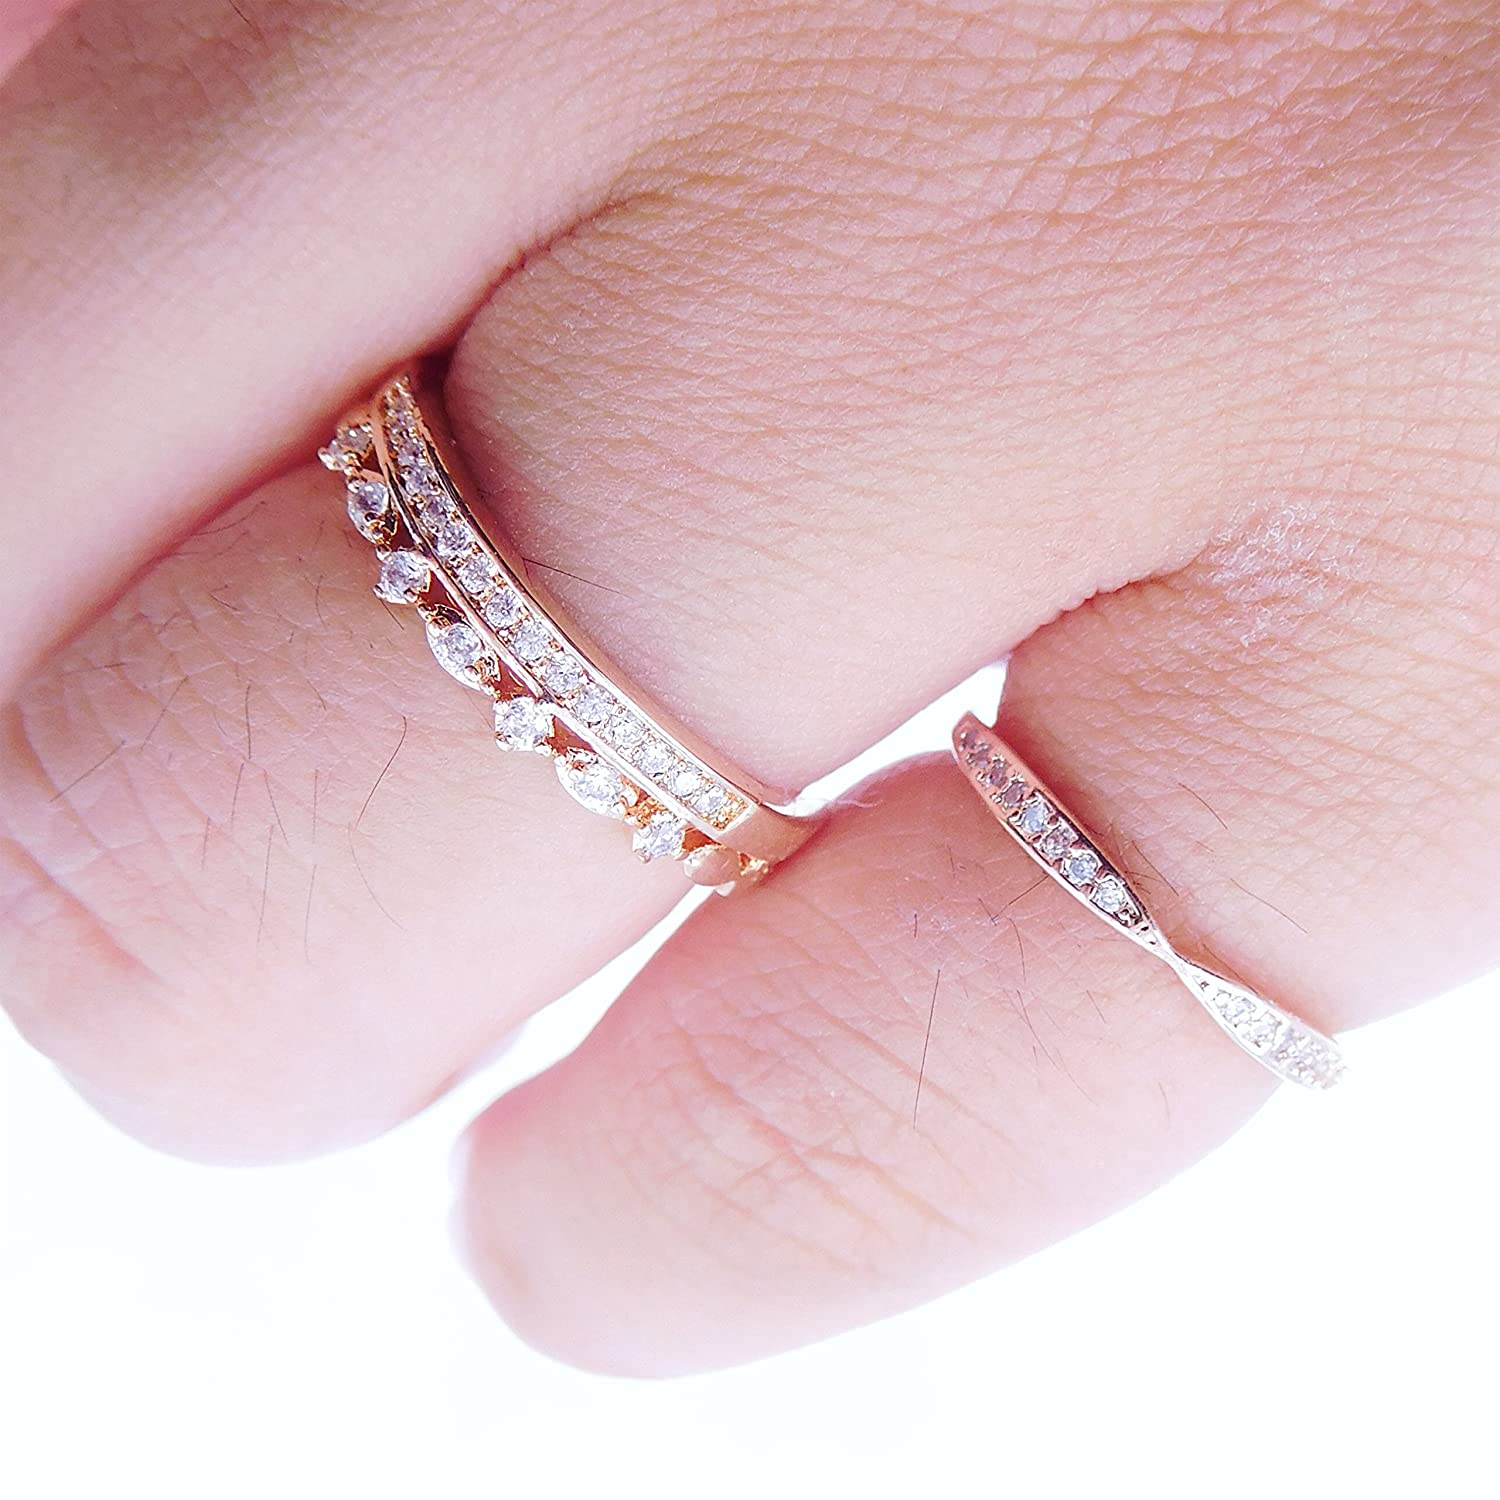 Amazon.com: 14K Dainty and Delicate Double Pave CZ Band Ring - Rose ...